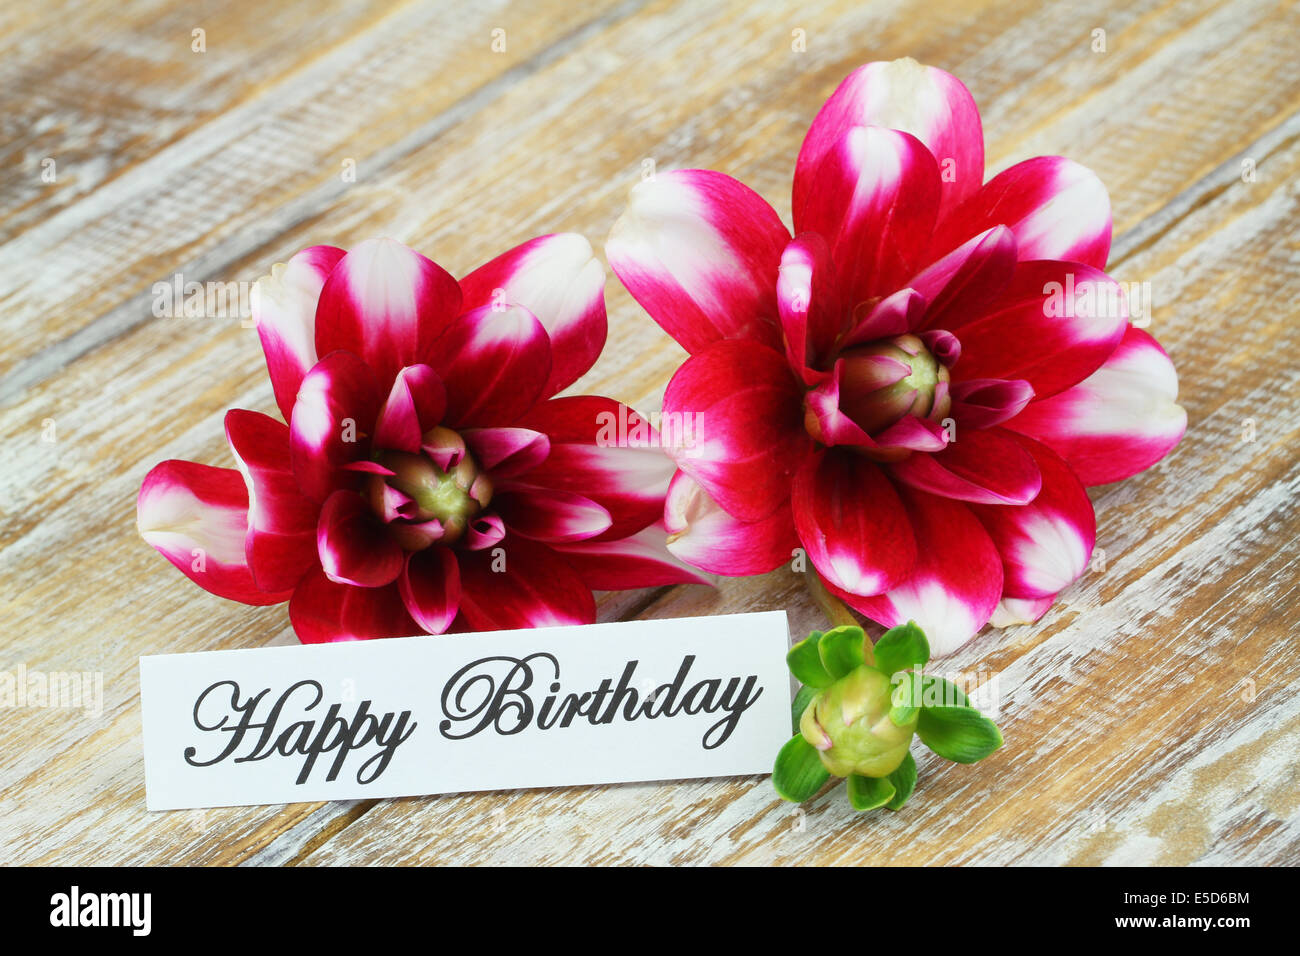 Free Images Of Birthday Flowers Awesome Birthday Flowers Colorful